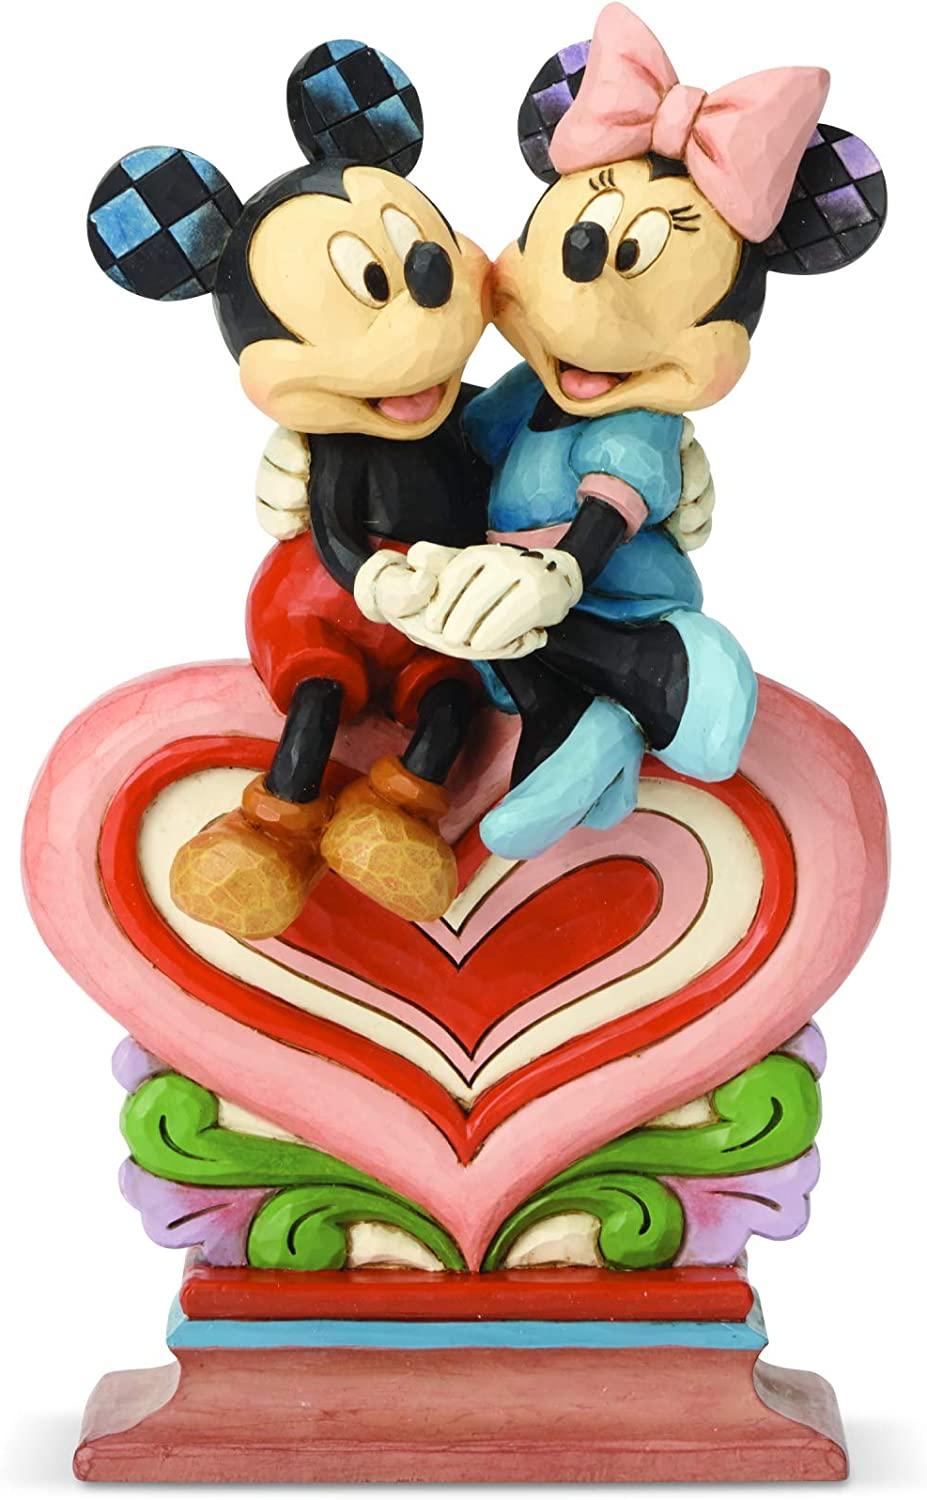 Enesco Disney Traditions by Jim Shore Mickey and Minnie Mouse Sitting on Heart Figurine, 8.5 Inch, Multicolor